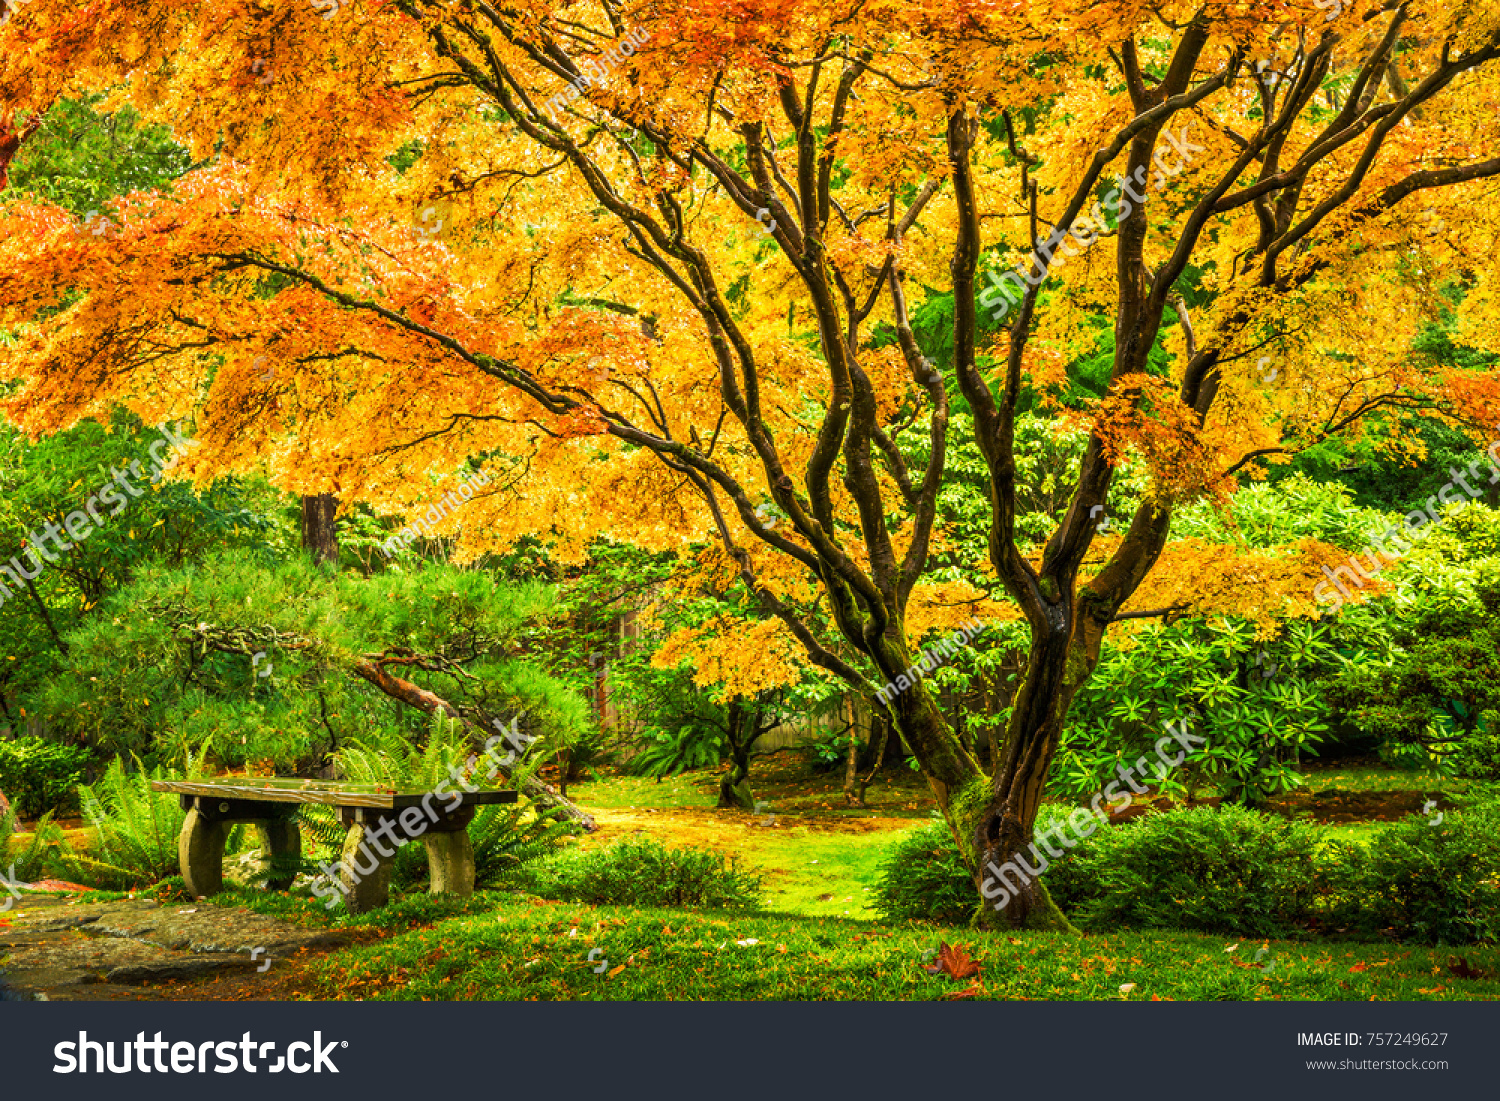 Japanese Maple Tree Golden Fall Foliage Stock Photo (Safe to Use ...